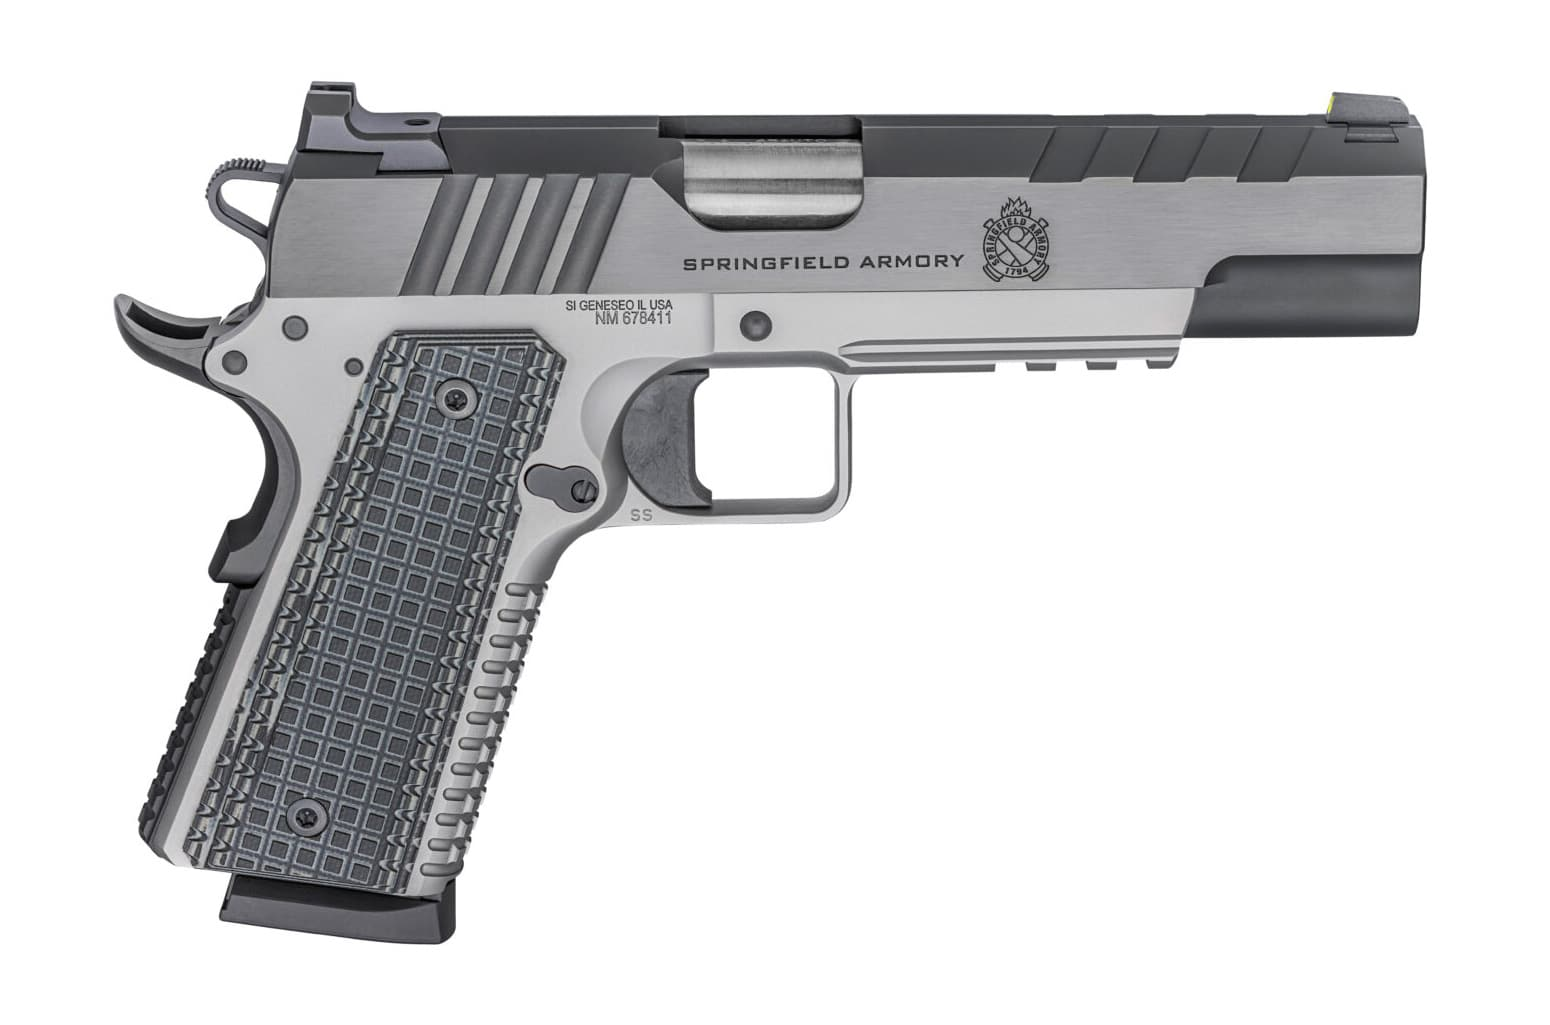 Side view of the Springfield Armory Emissary pistol